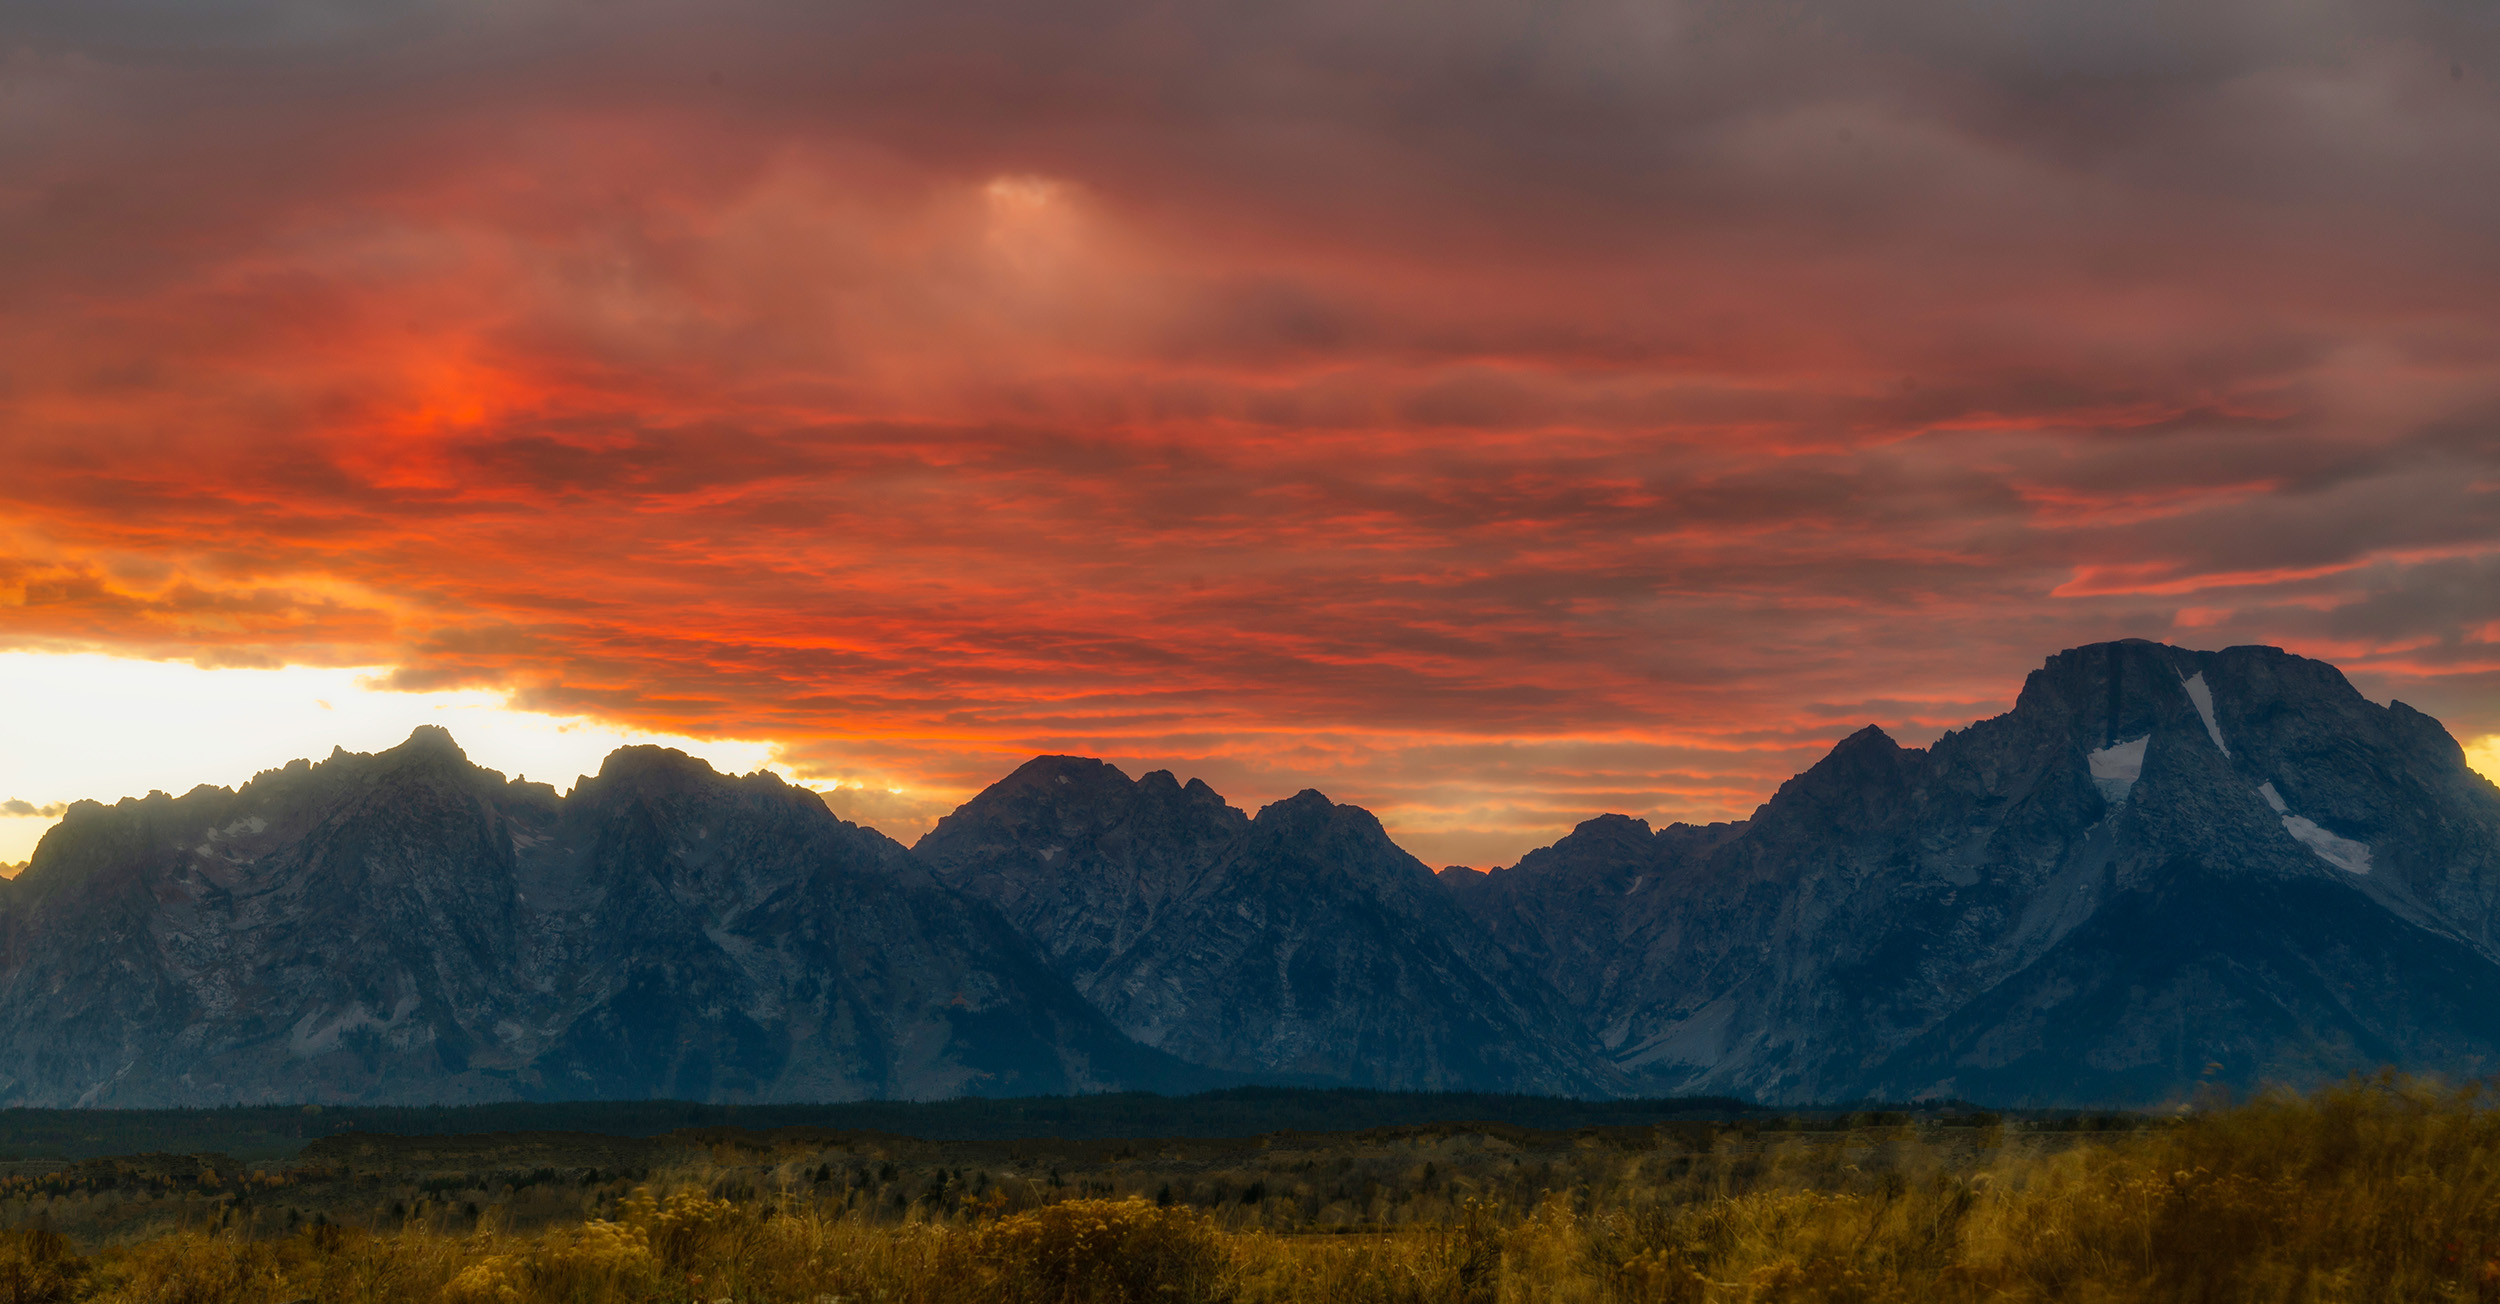 #sunset, #clouds, #light, #grandtetons, #grandtetonnationalpark, #nationalparks, #light, #color, #landscape